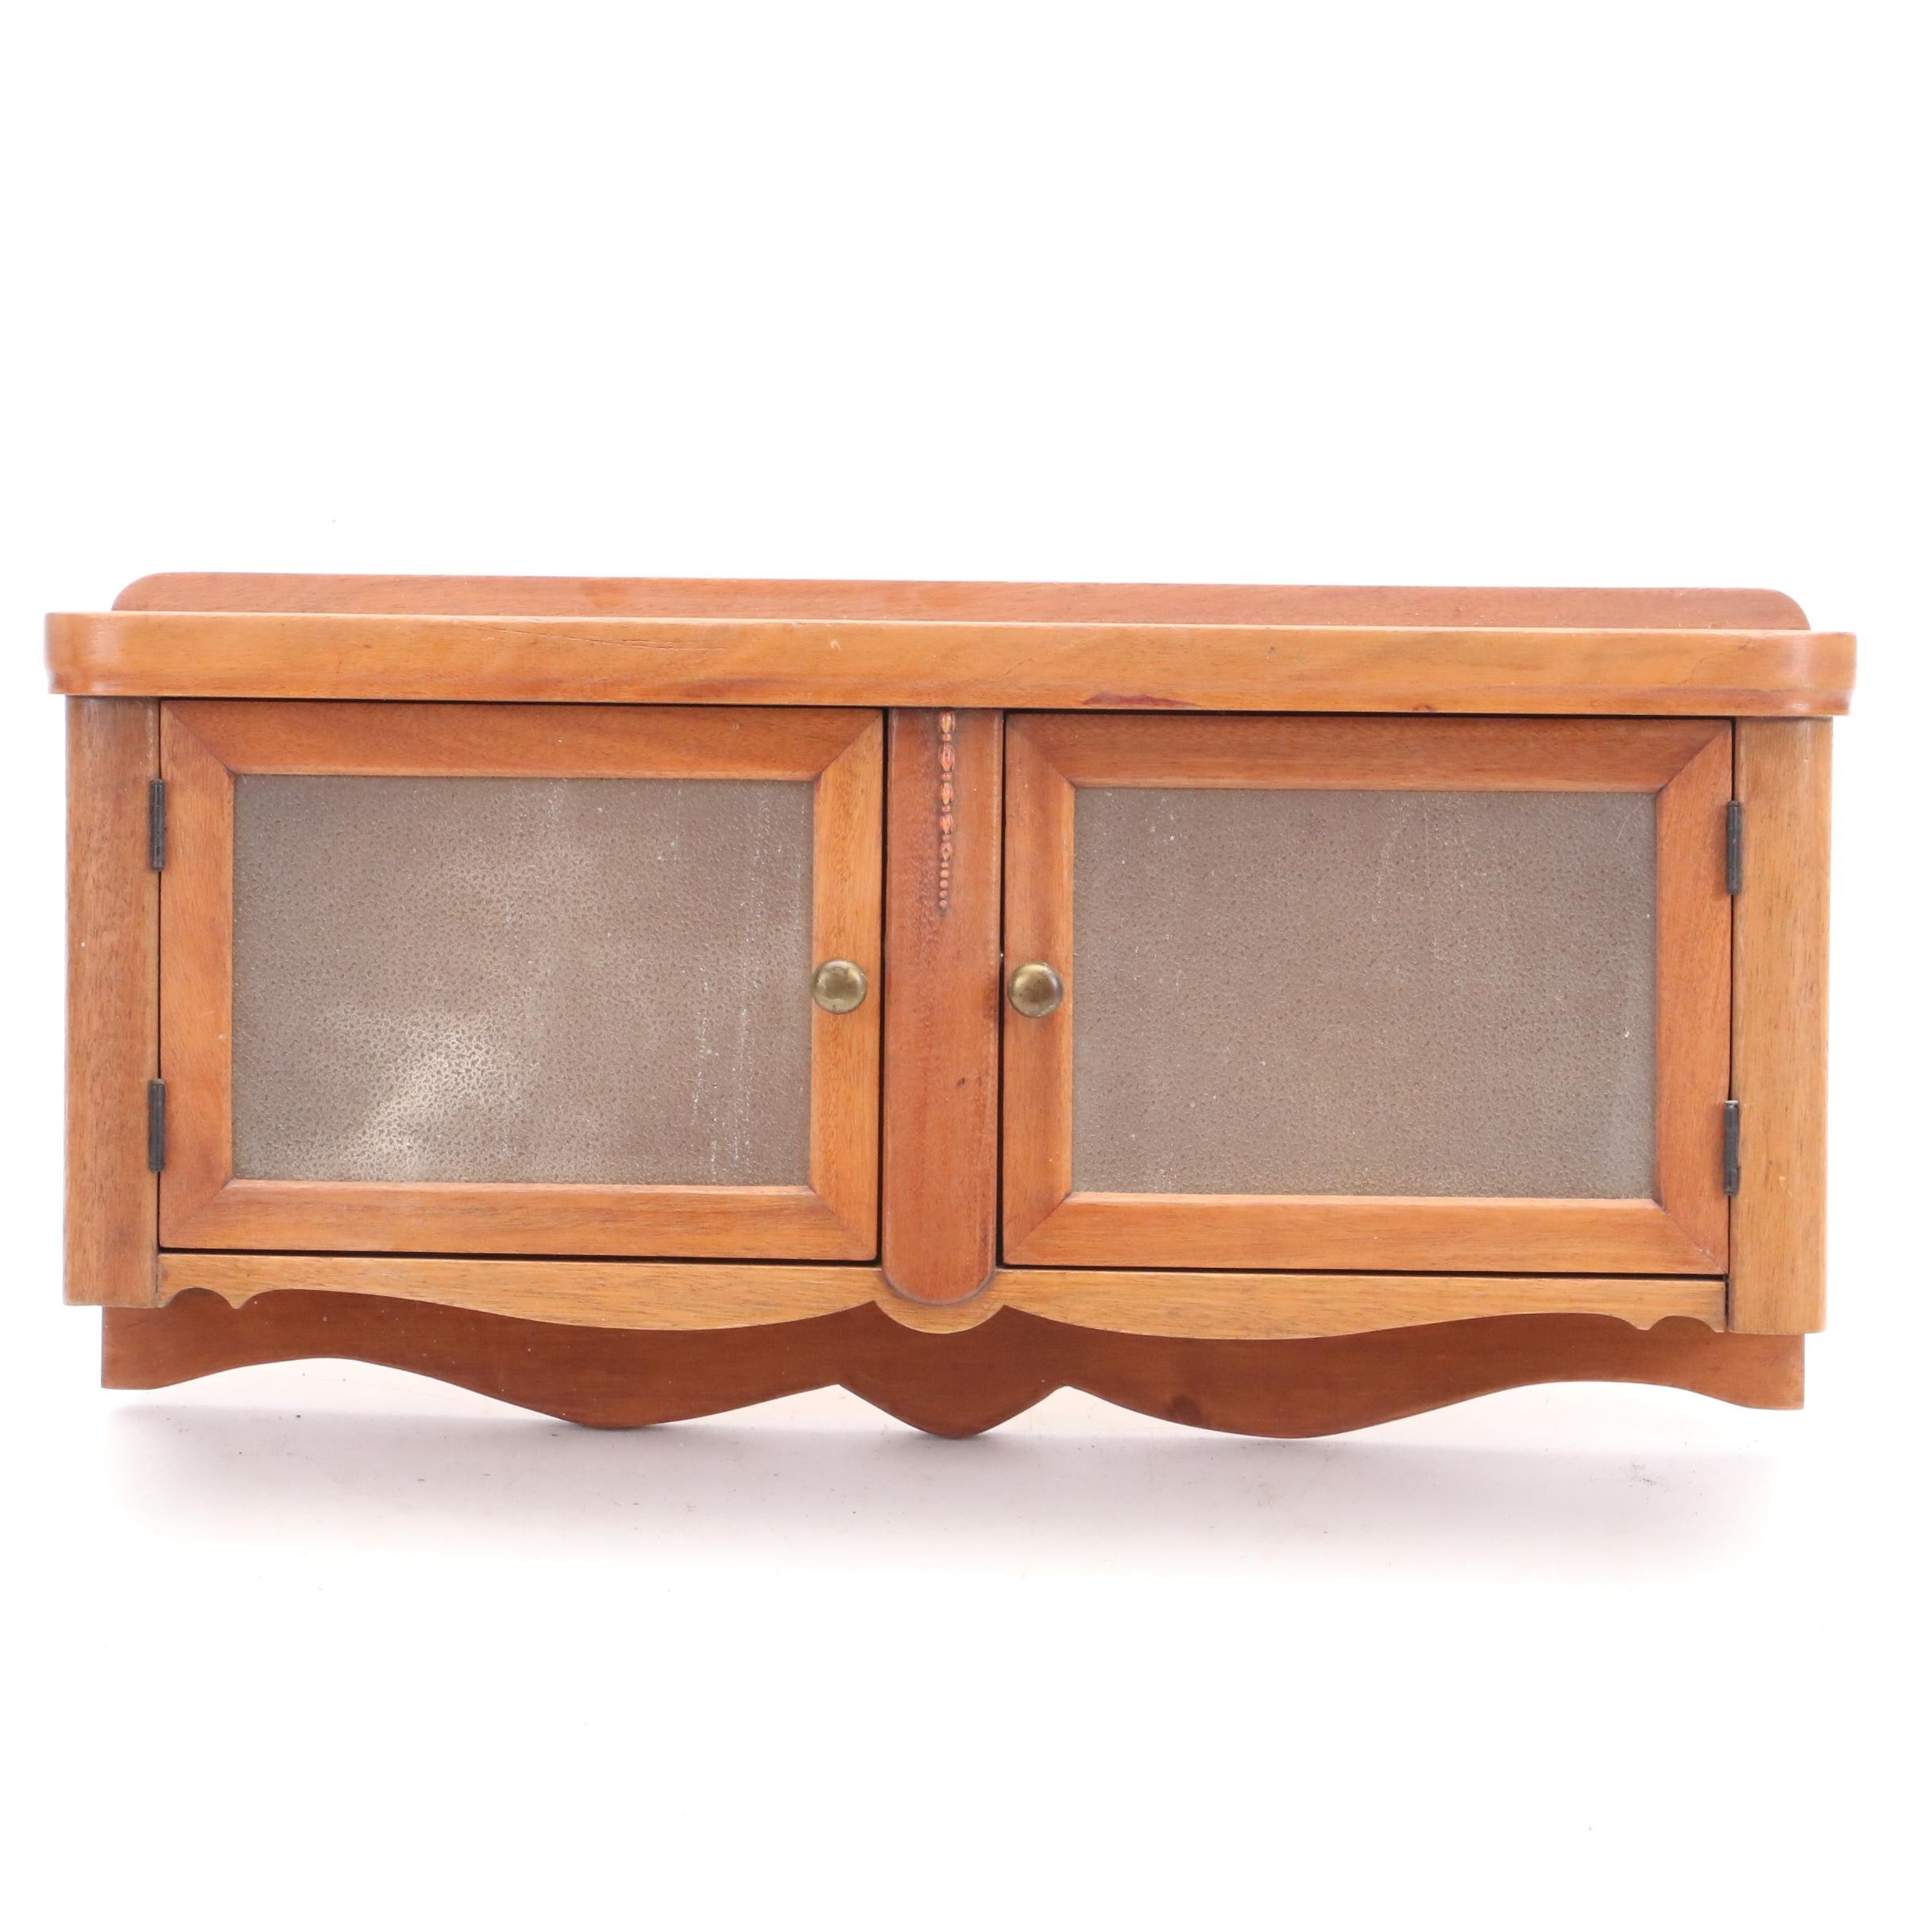 1960s Storage Cabinet Top by Weber Dental